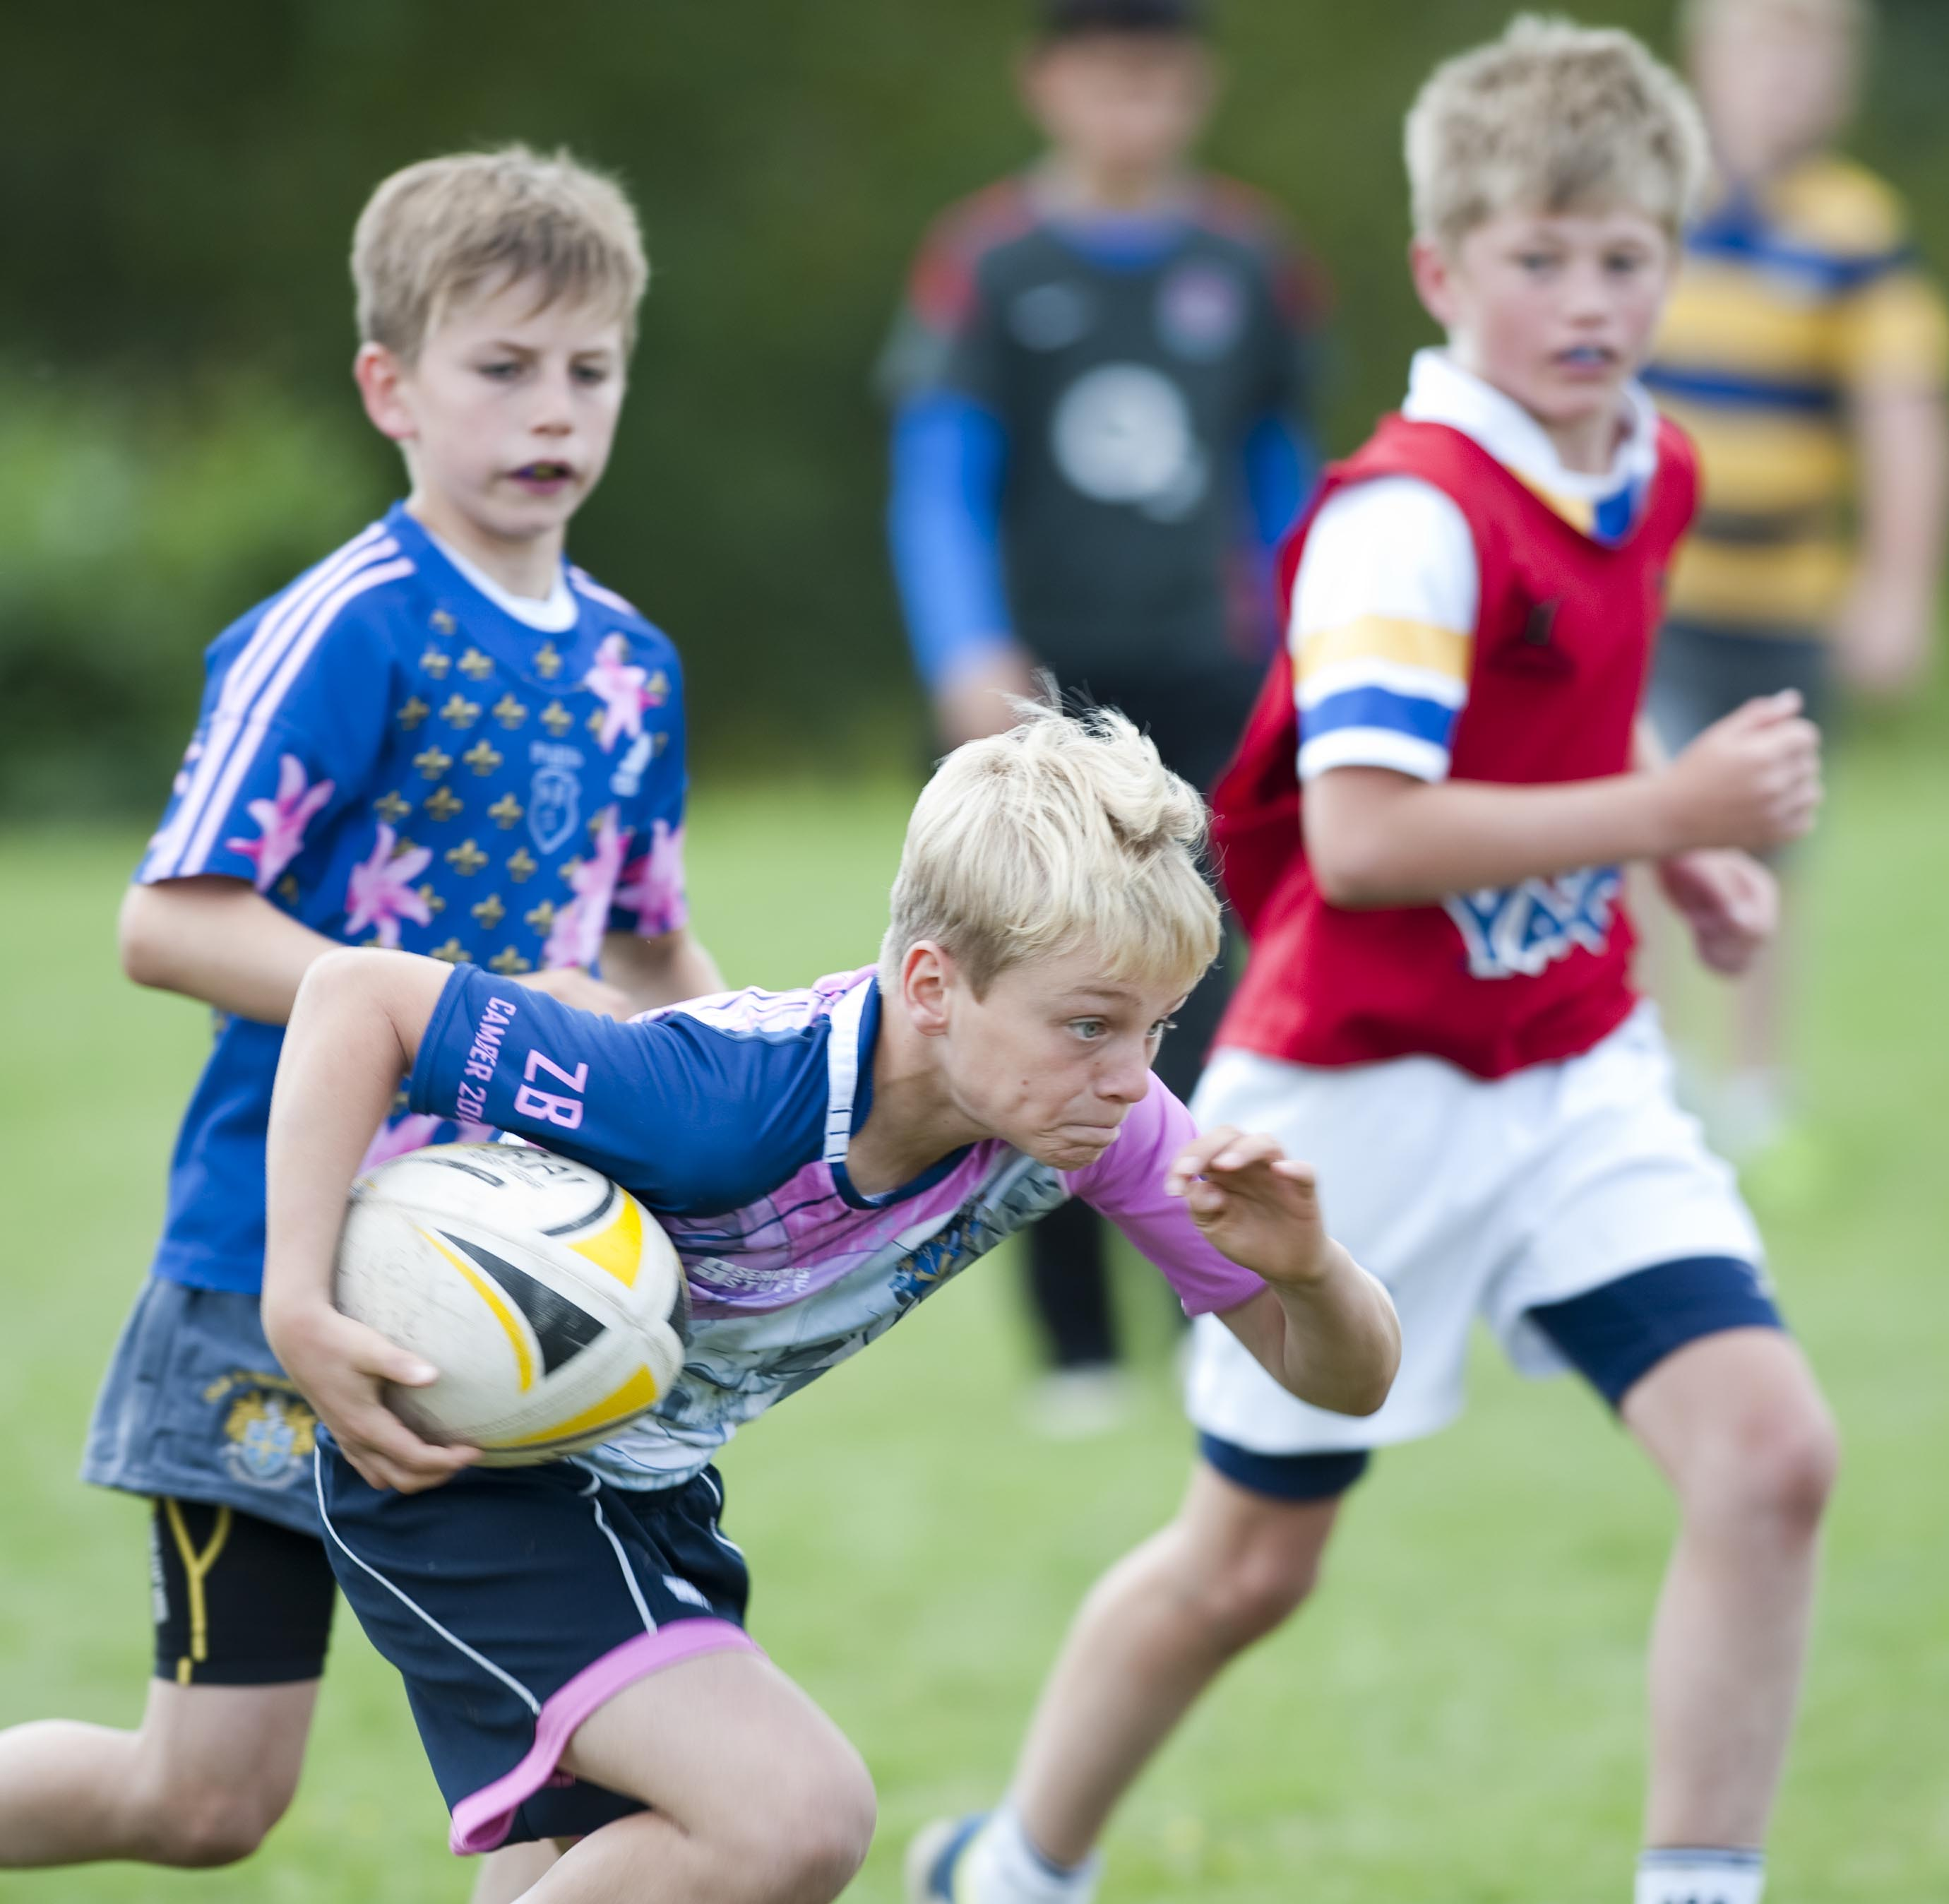 Rugby Camp France Sprinting